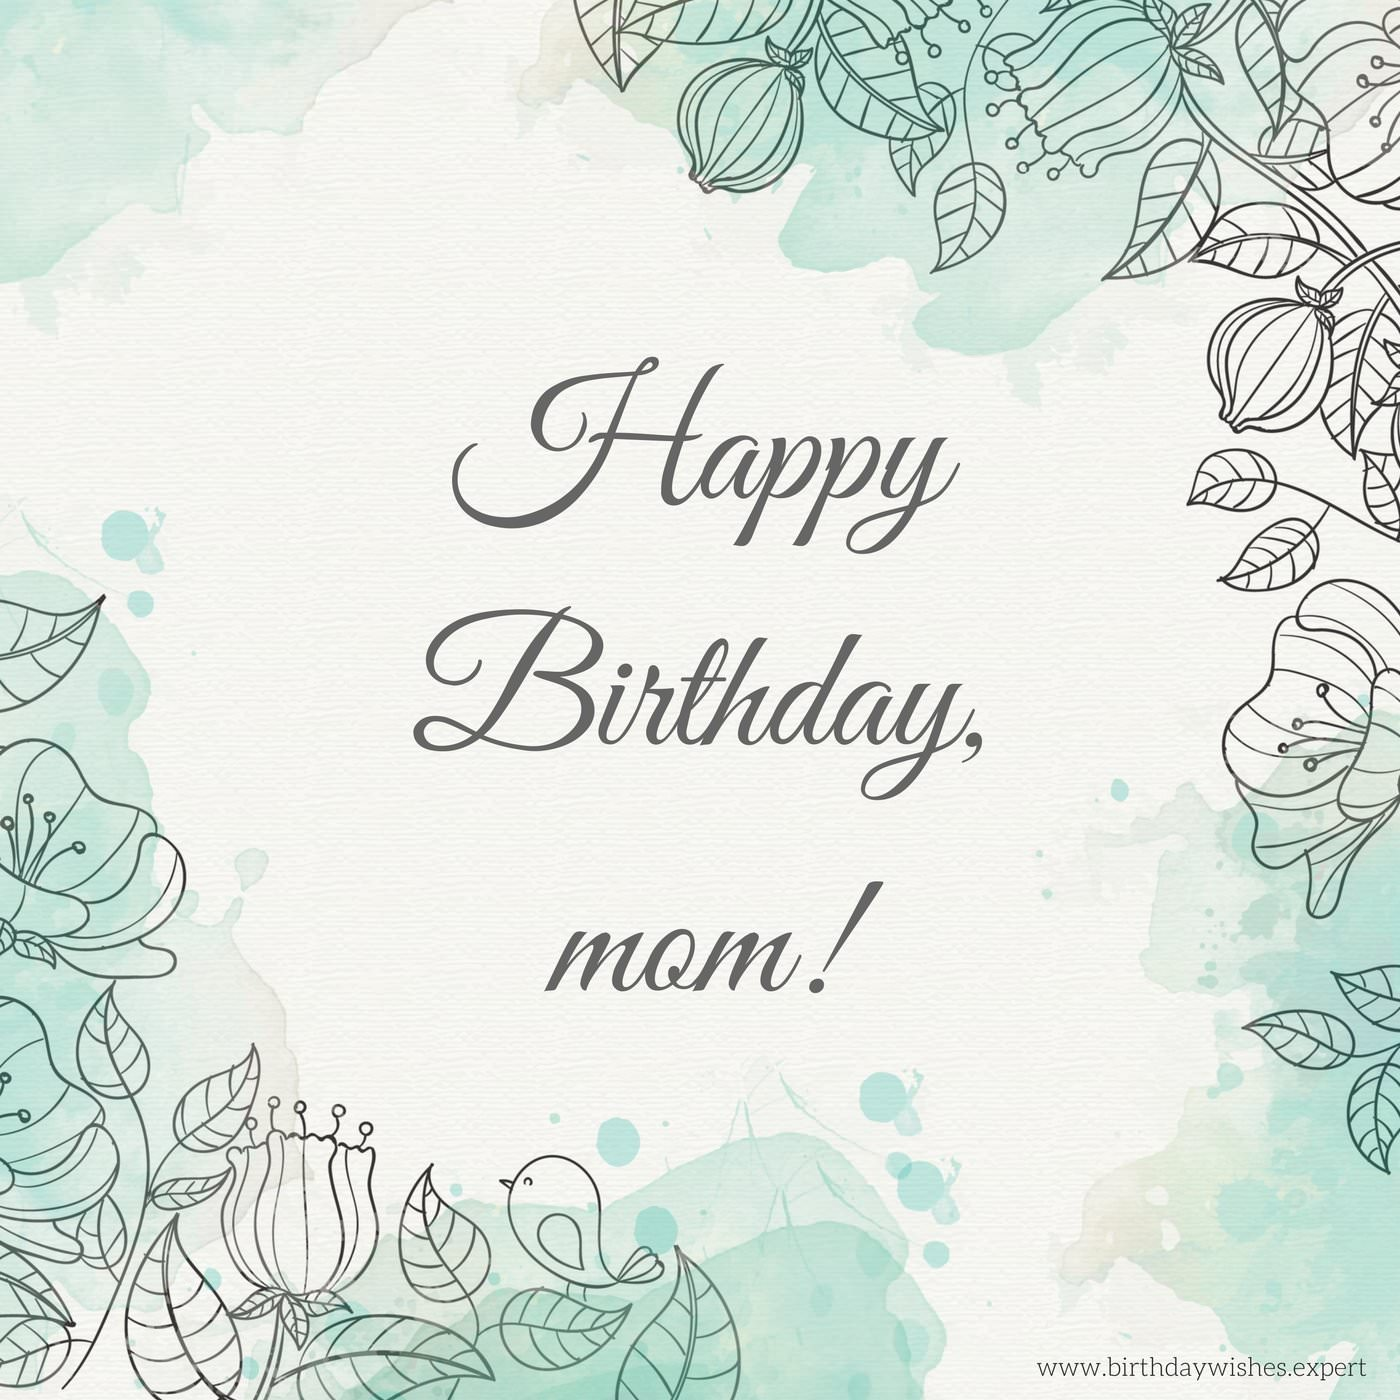 Beautiful Birthday Images That Your Mother Would Appreciate